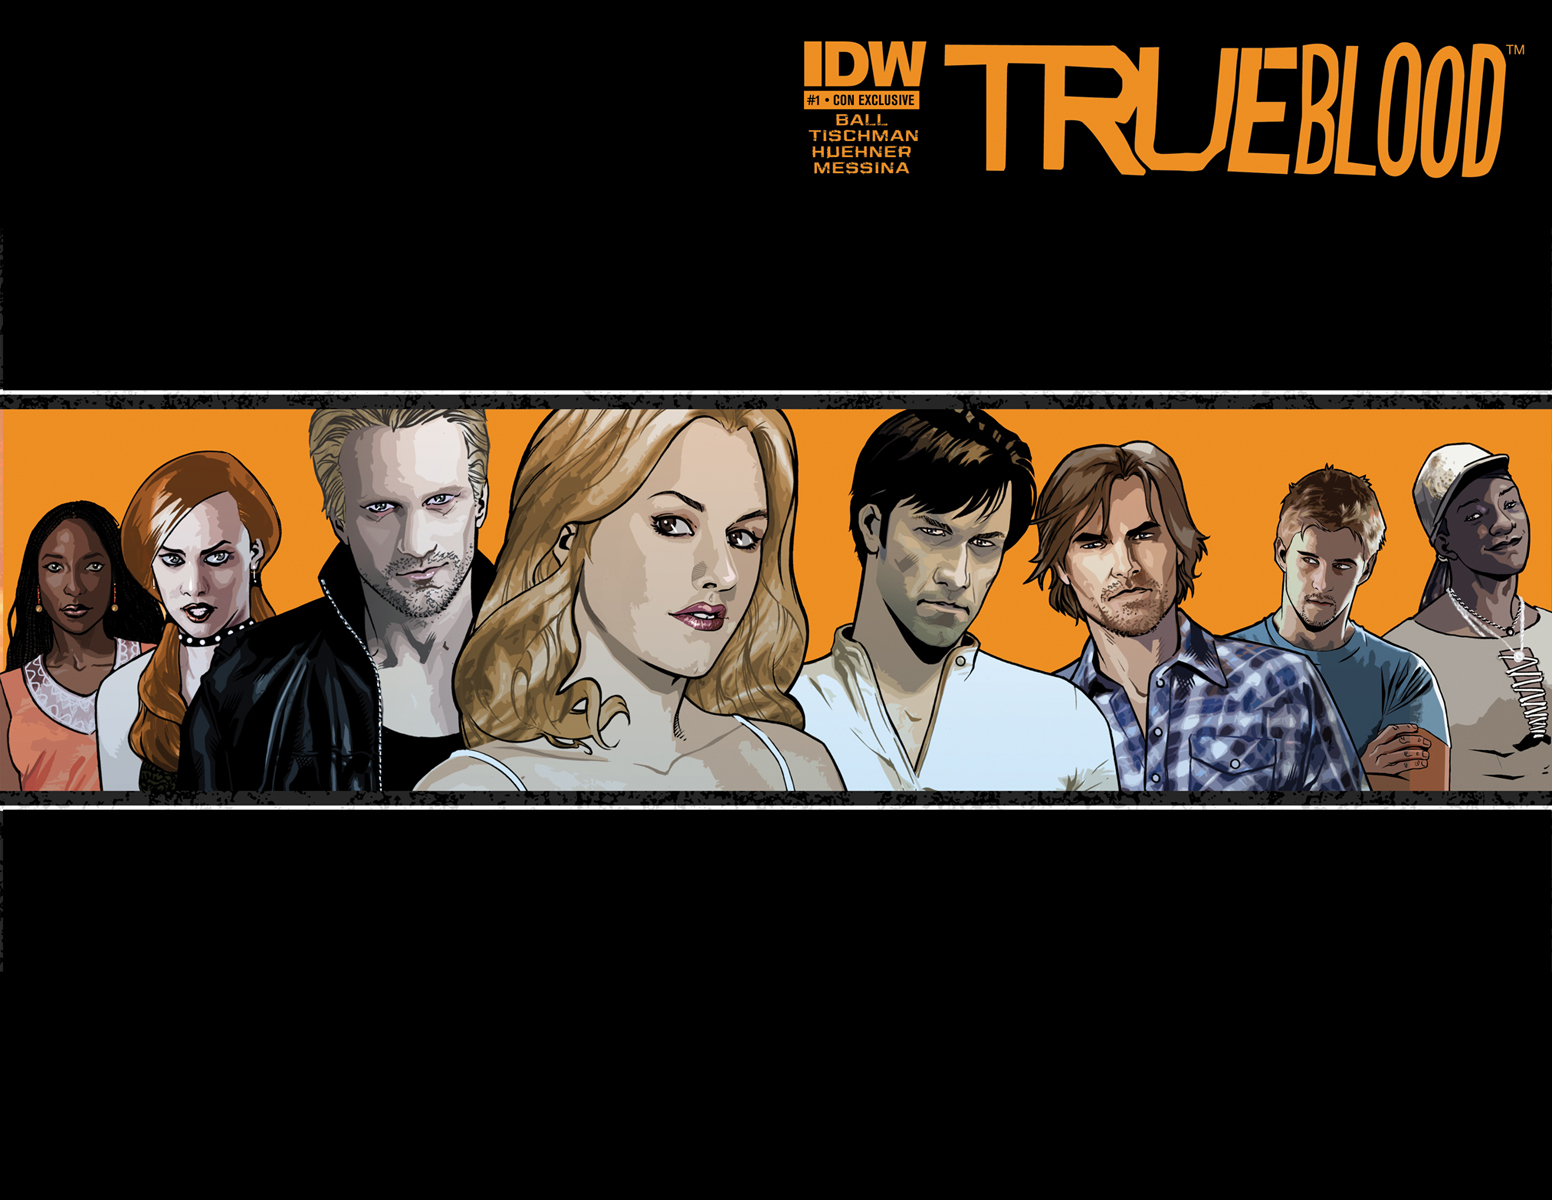 True Blood #1 Messina wrap around cover